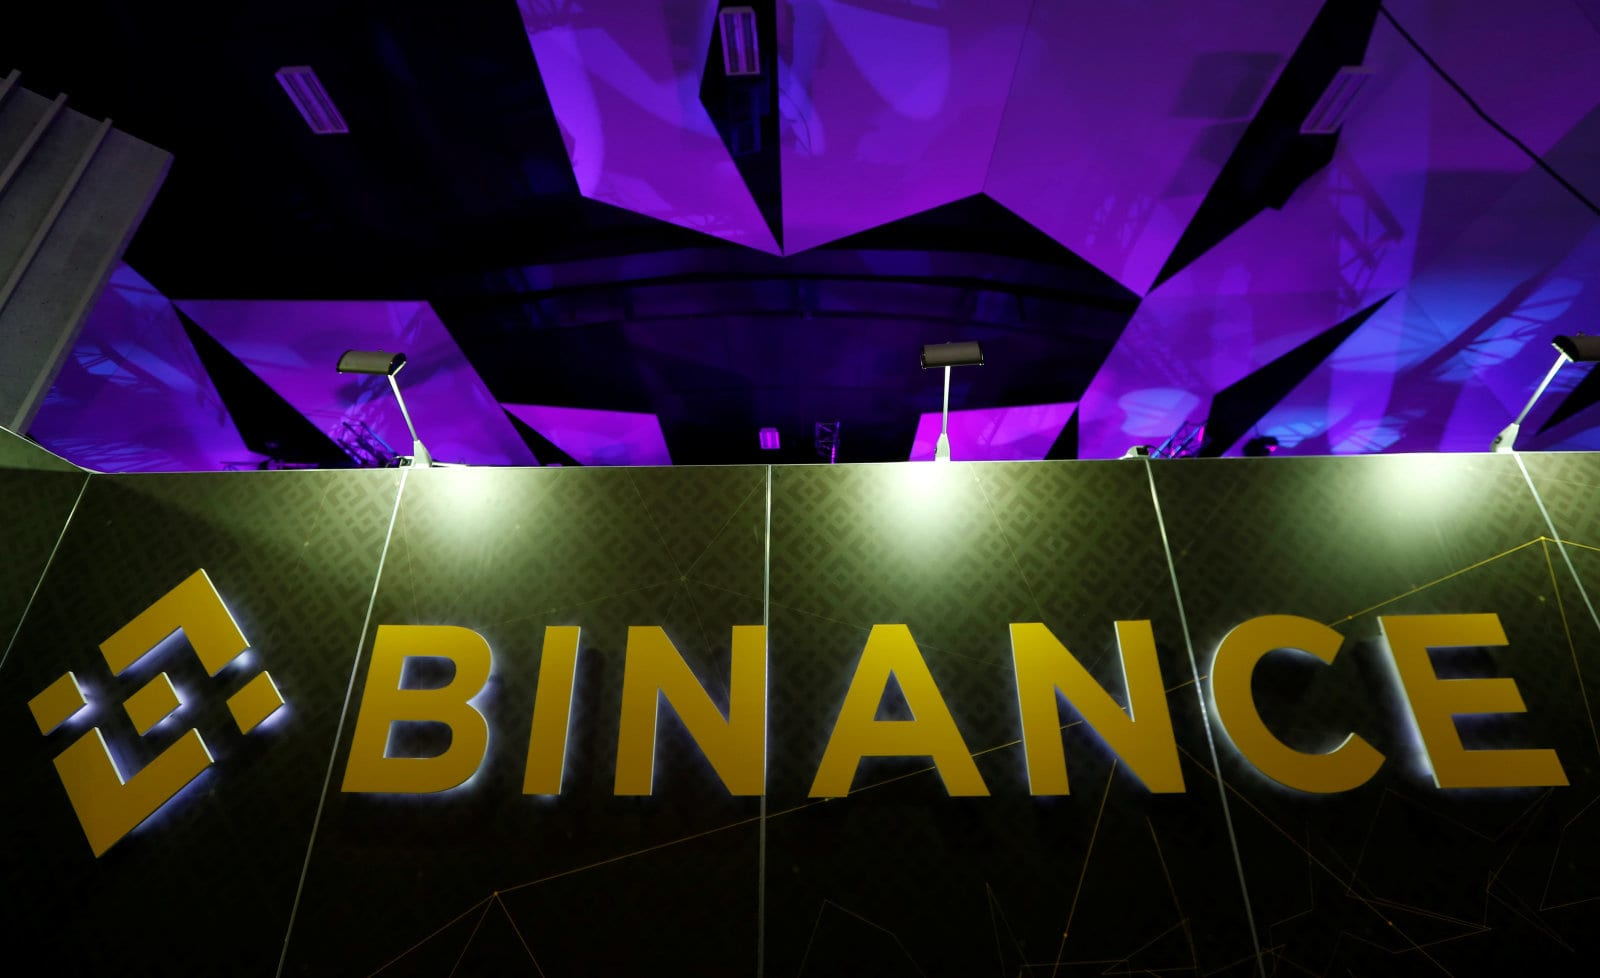 dims - Binance's KYC Data Hacked; Changpeng Zhao Addresses The Issue – The Risks Of KYC Surpass Benefits